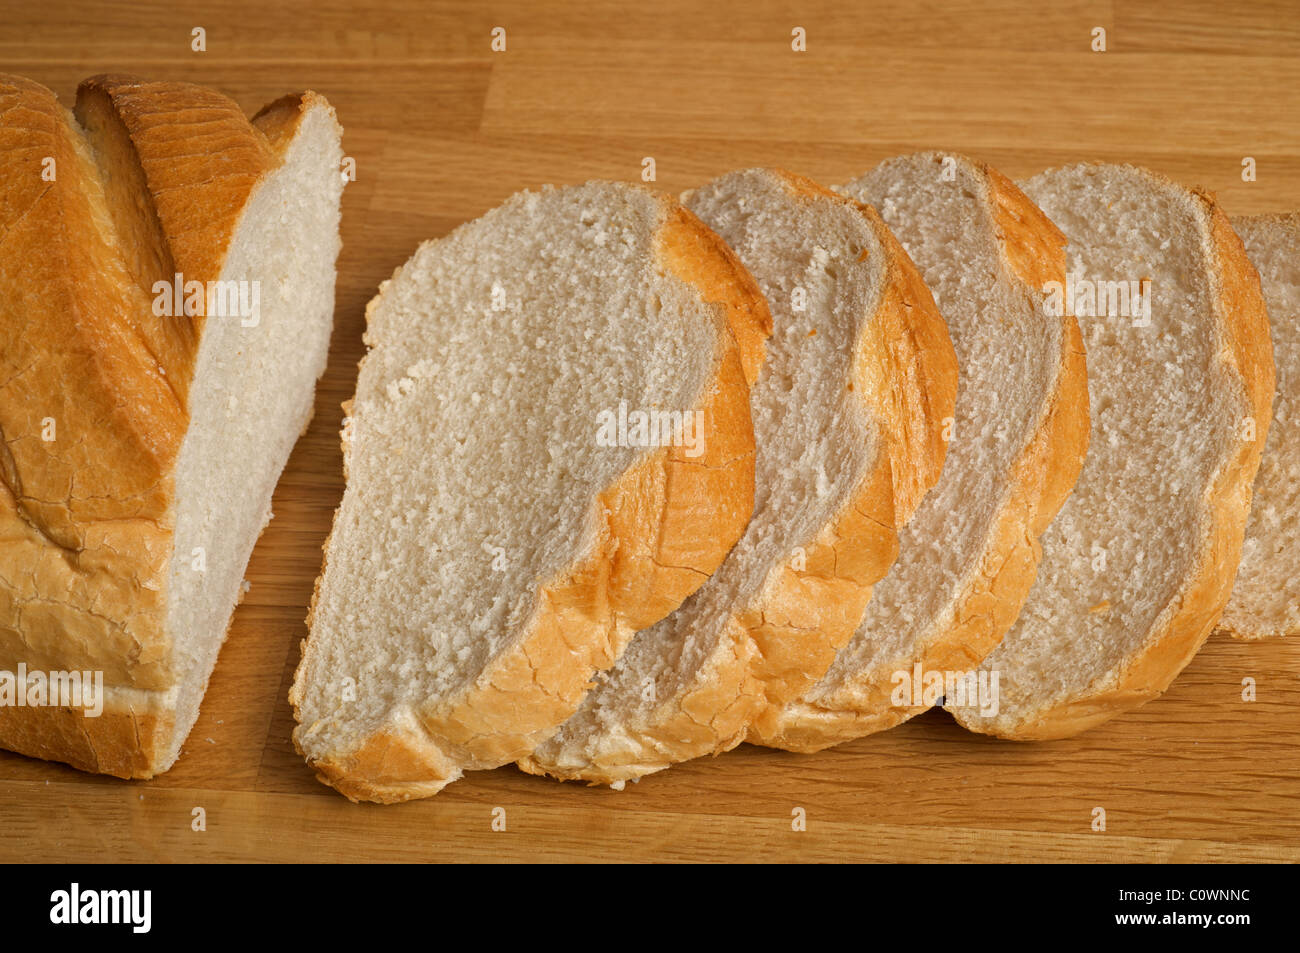 White bloomer loaf of bread - Stock Image